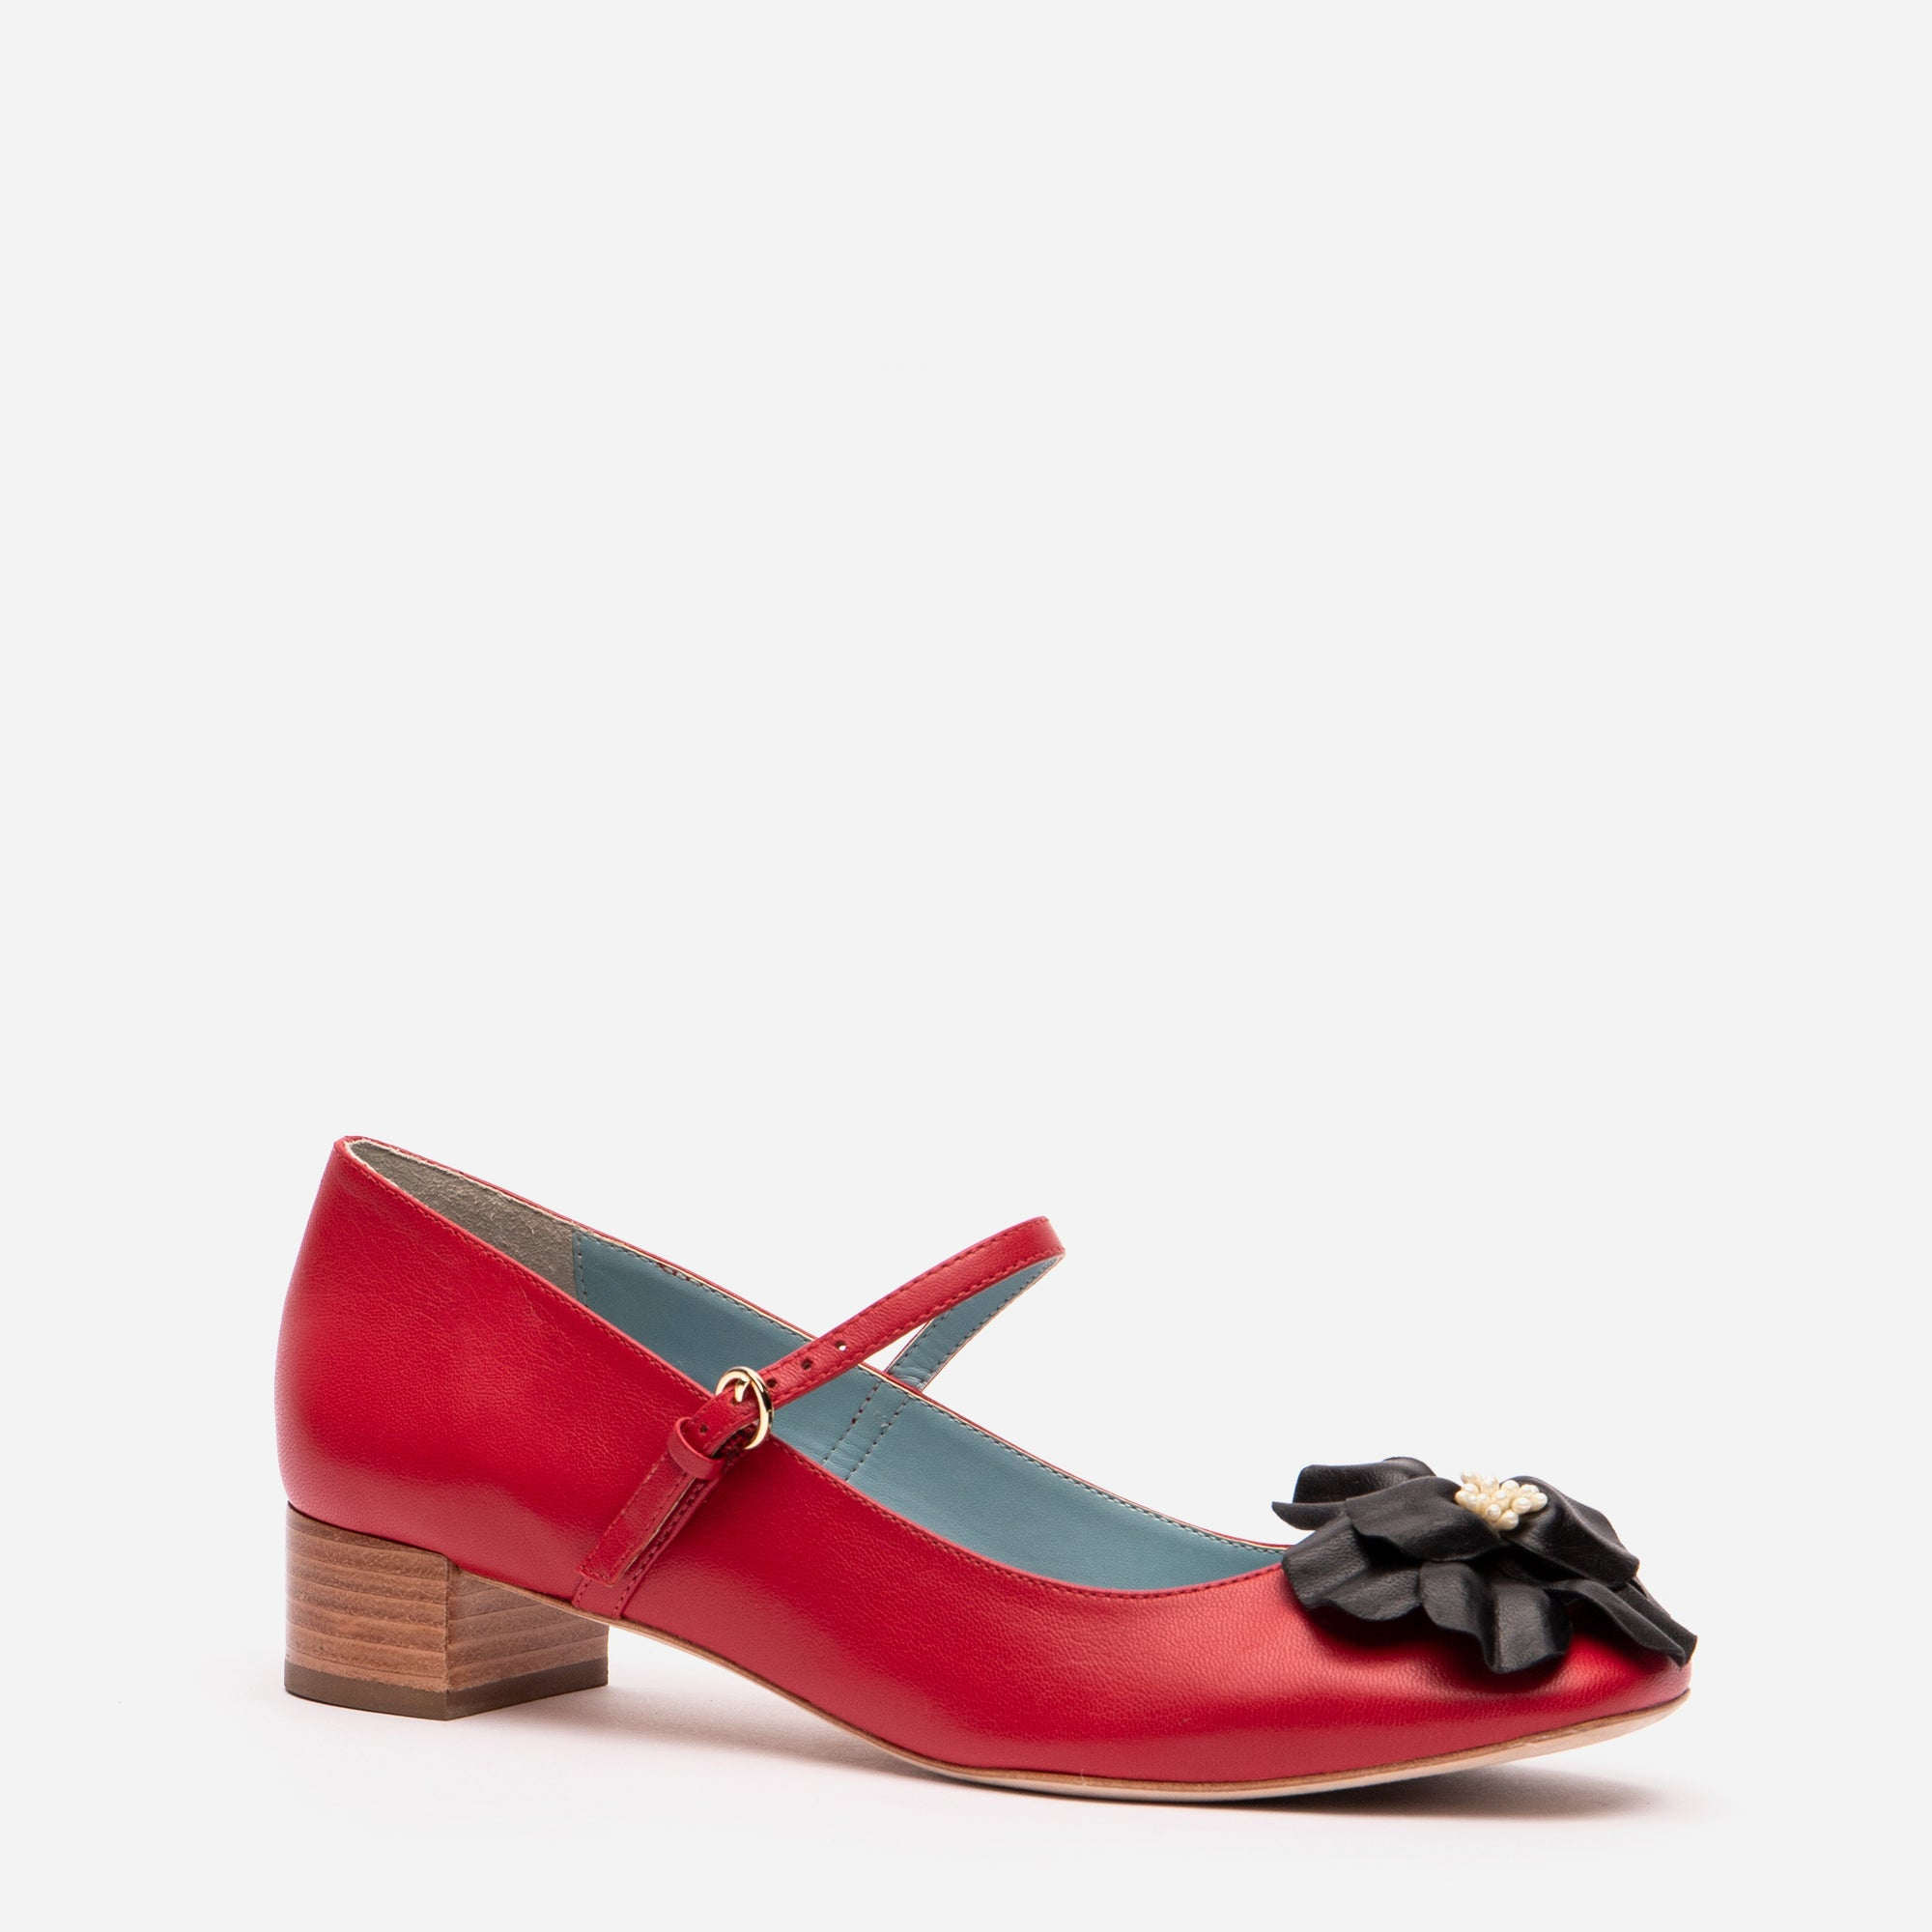 Babe Mary Jane Heels Red Black